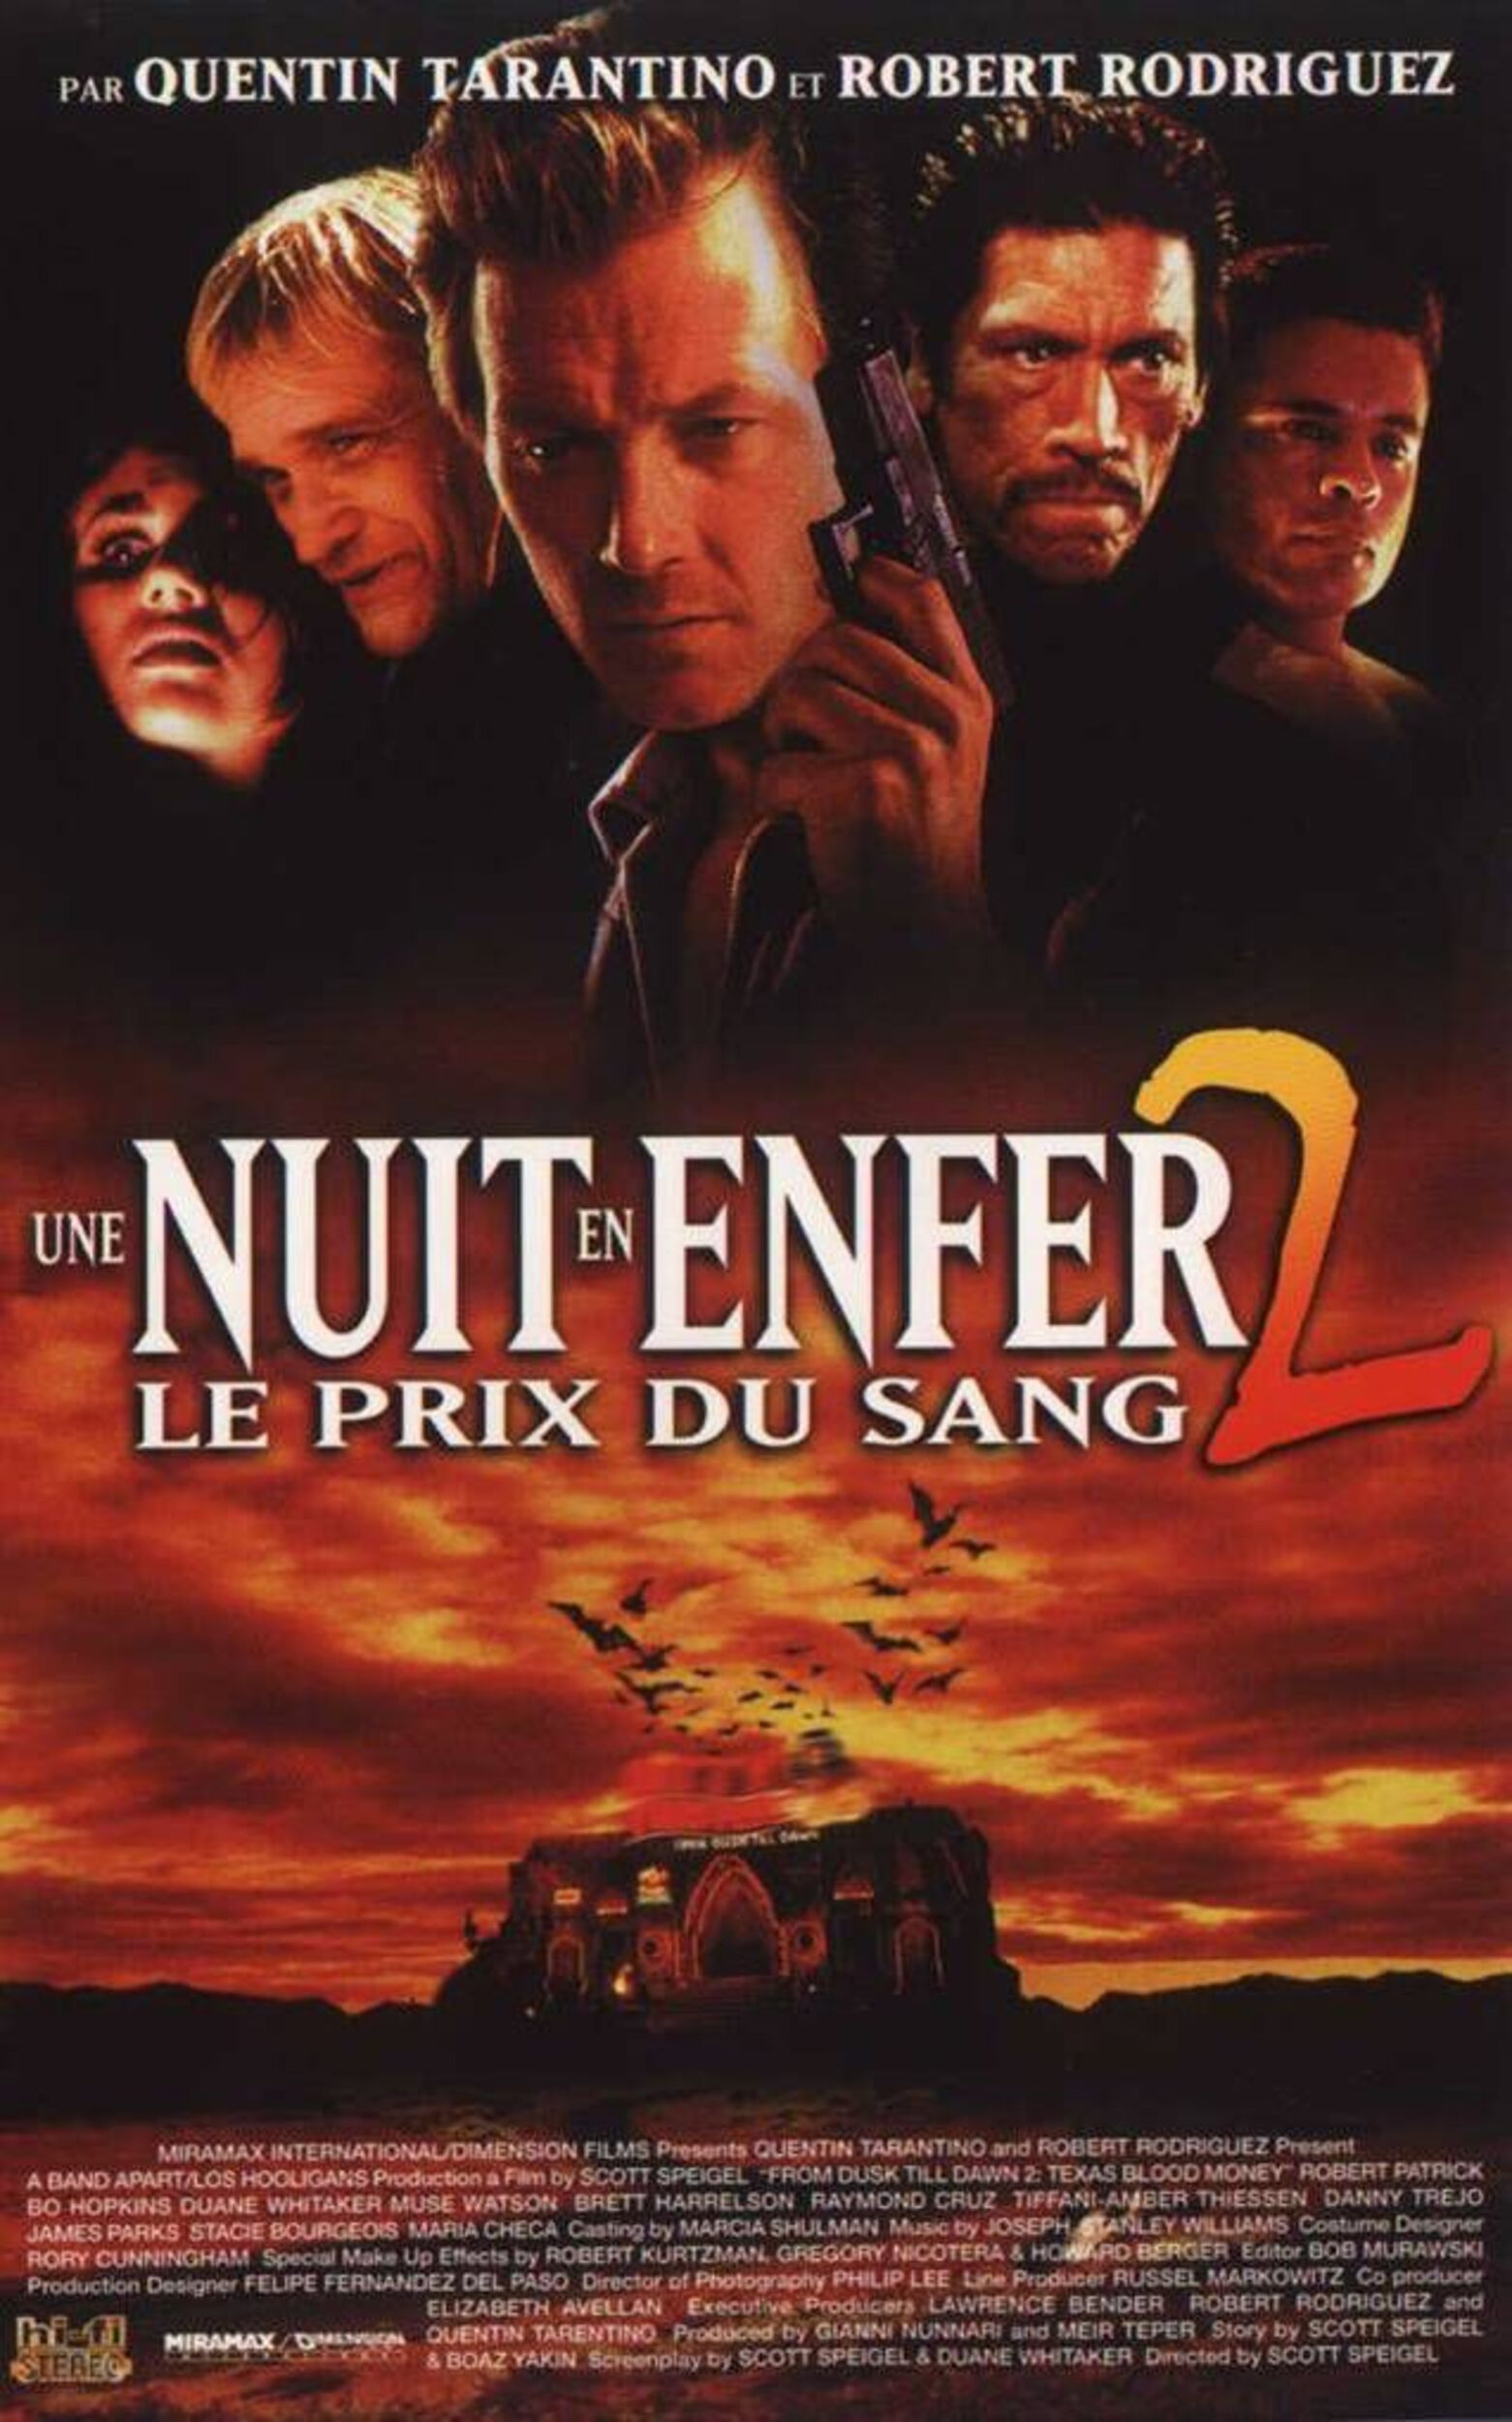 Affiche poster nuit enfer 2 prix sang From Dusk Till Dawn Texas Blood Money disney dimension